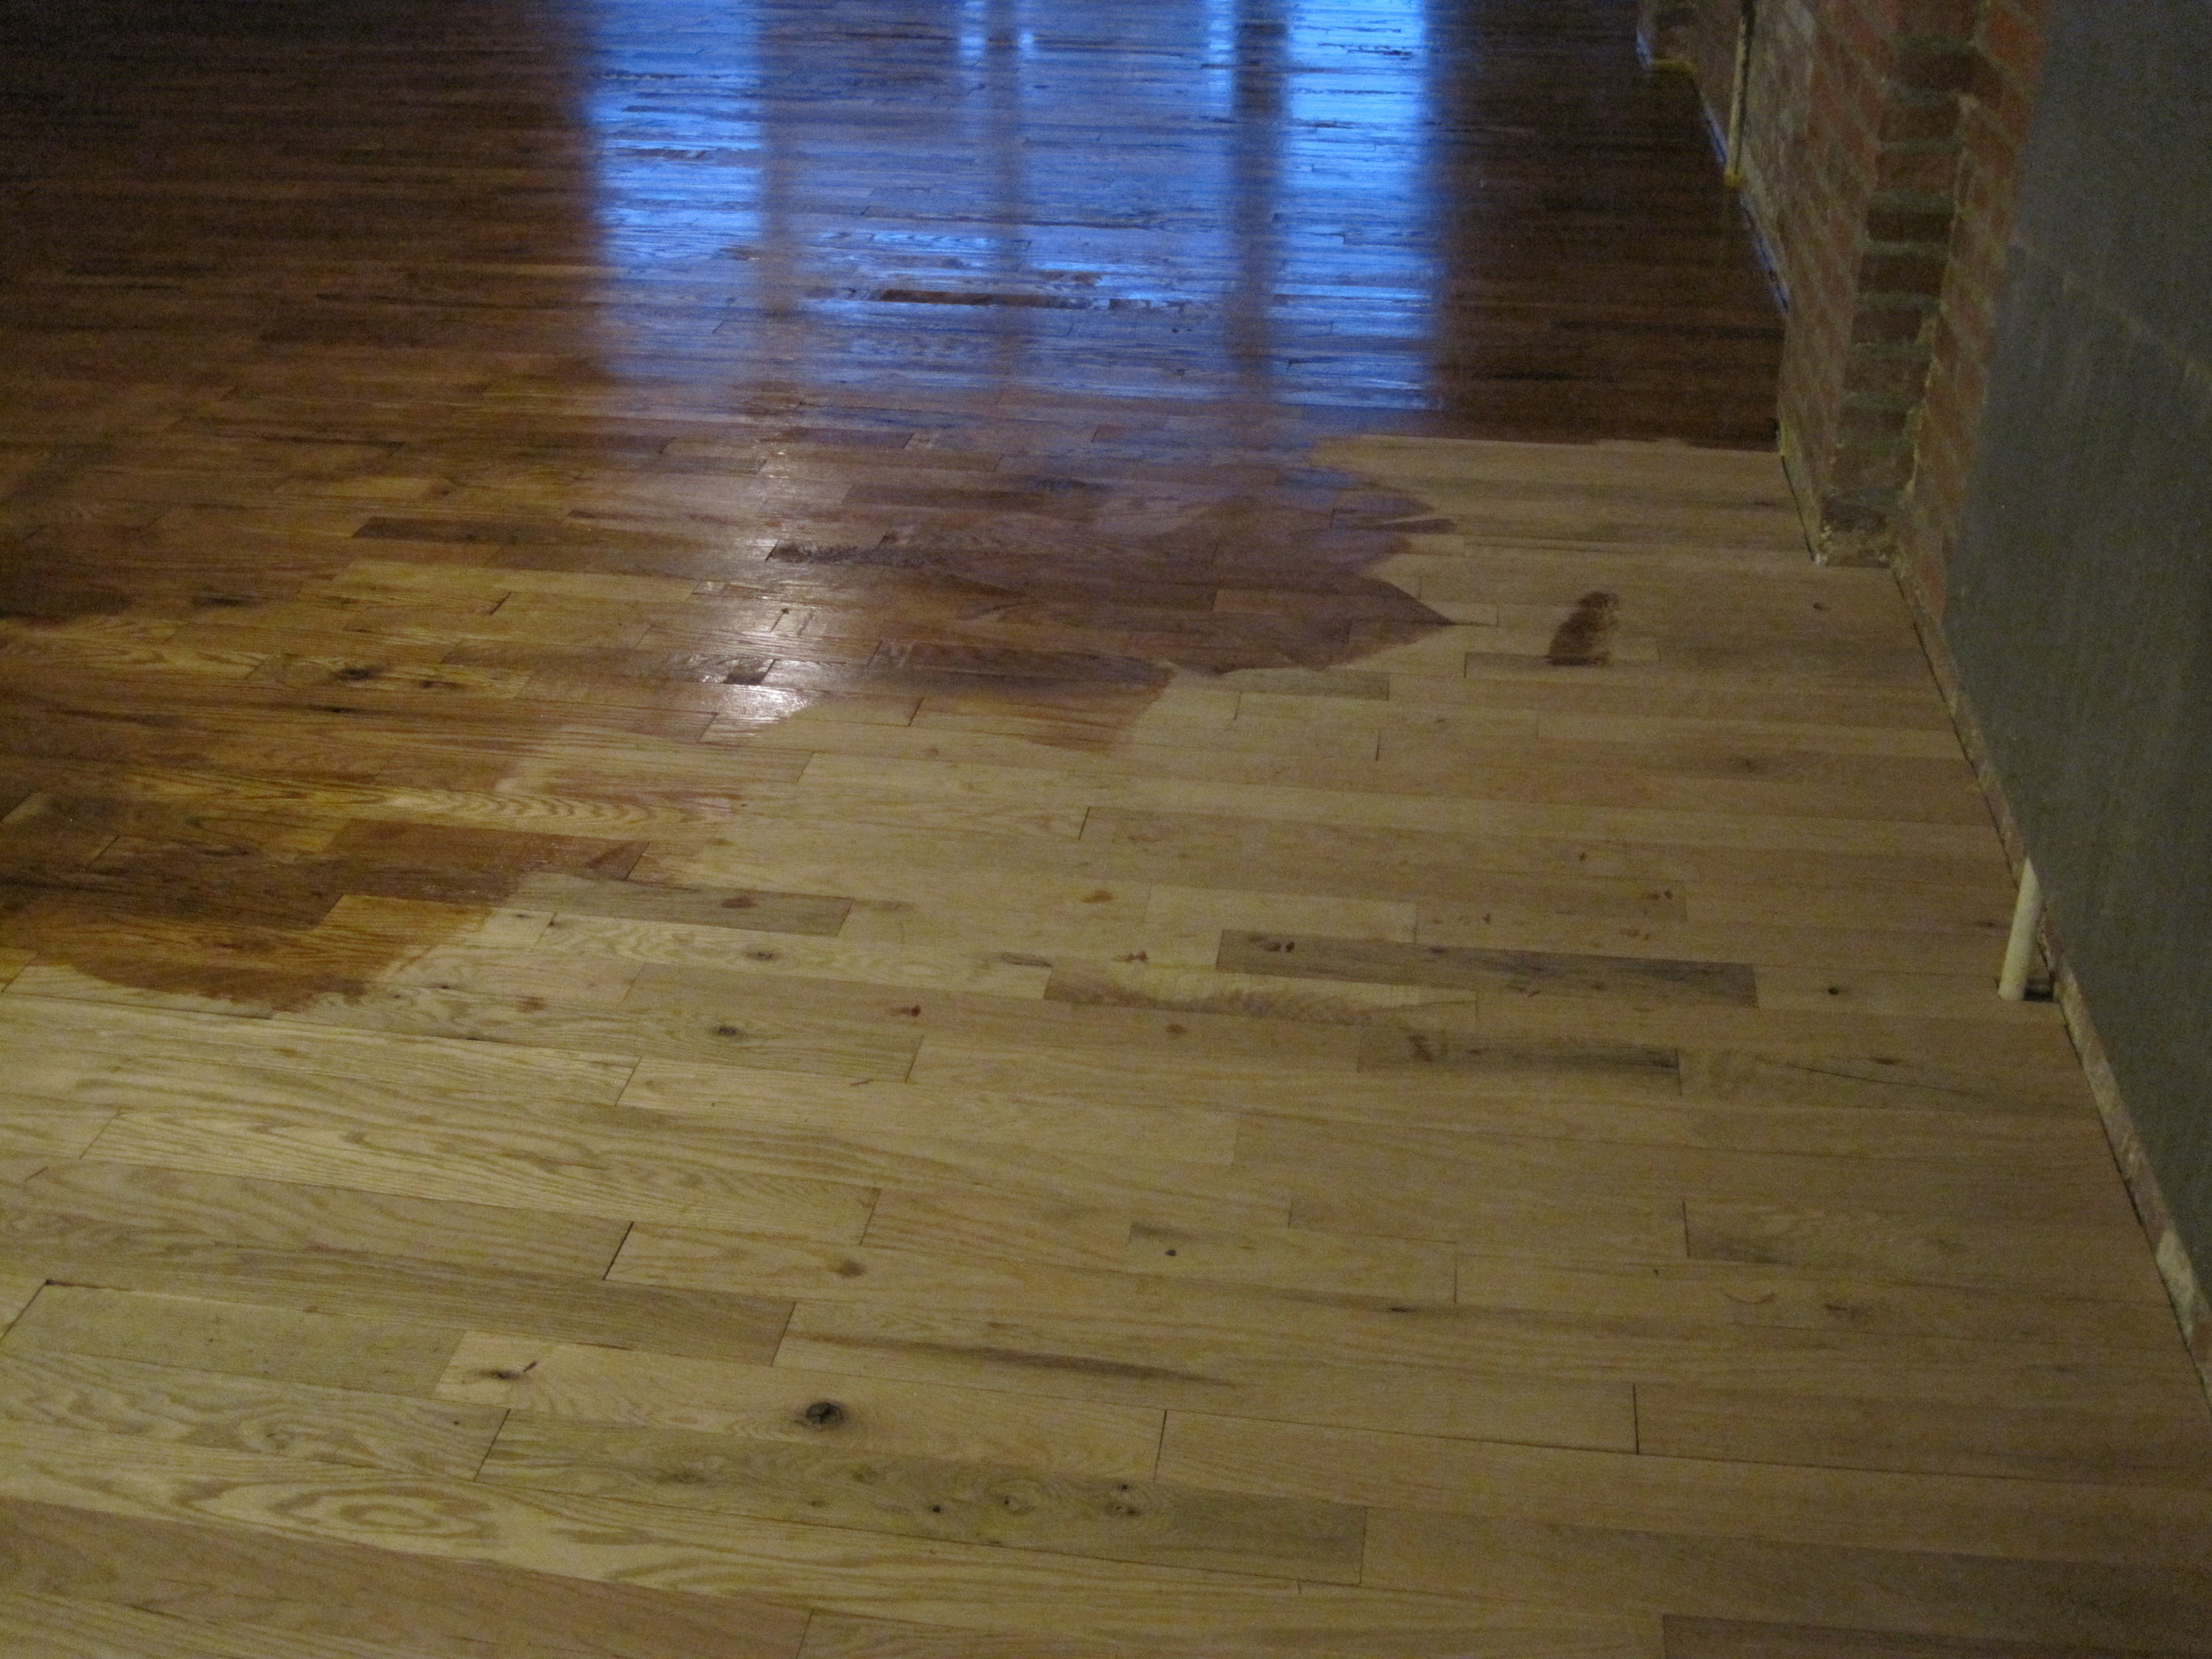 Staining the hardwood. We thought about leaving it natural without a stain but after it went down. We thought a light stain would bring out the grain of the wood.